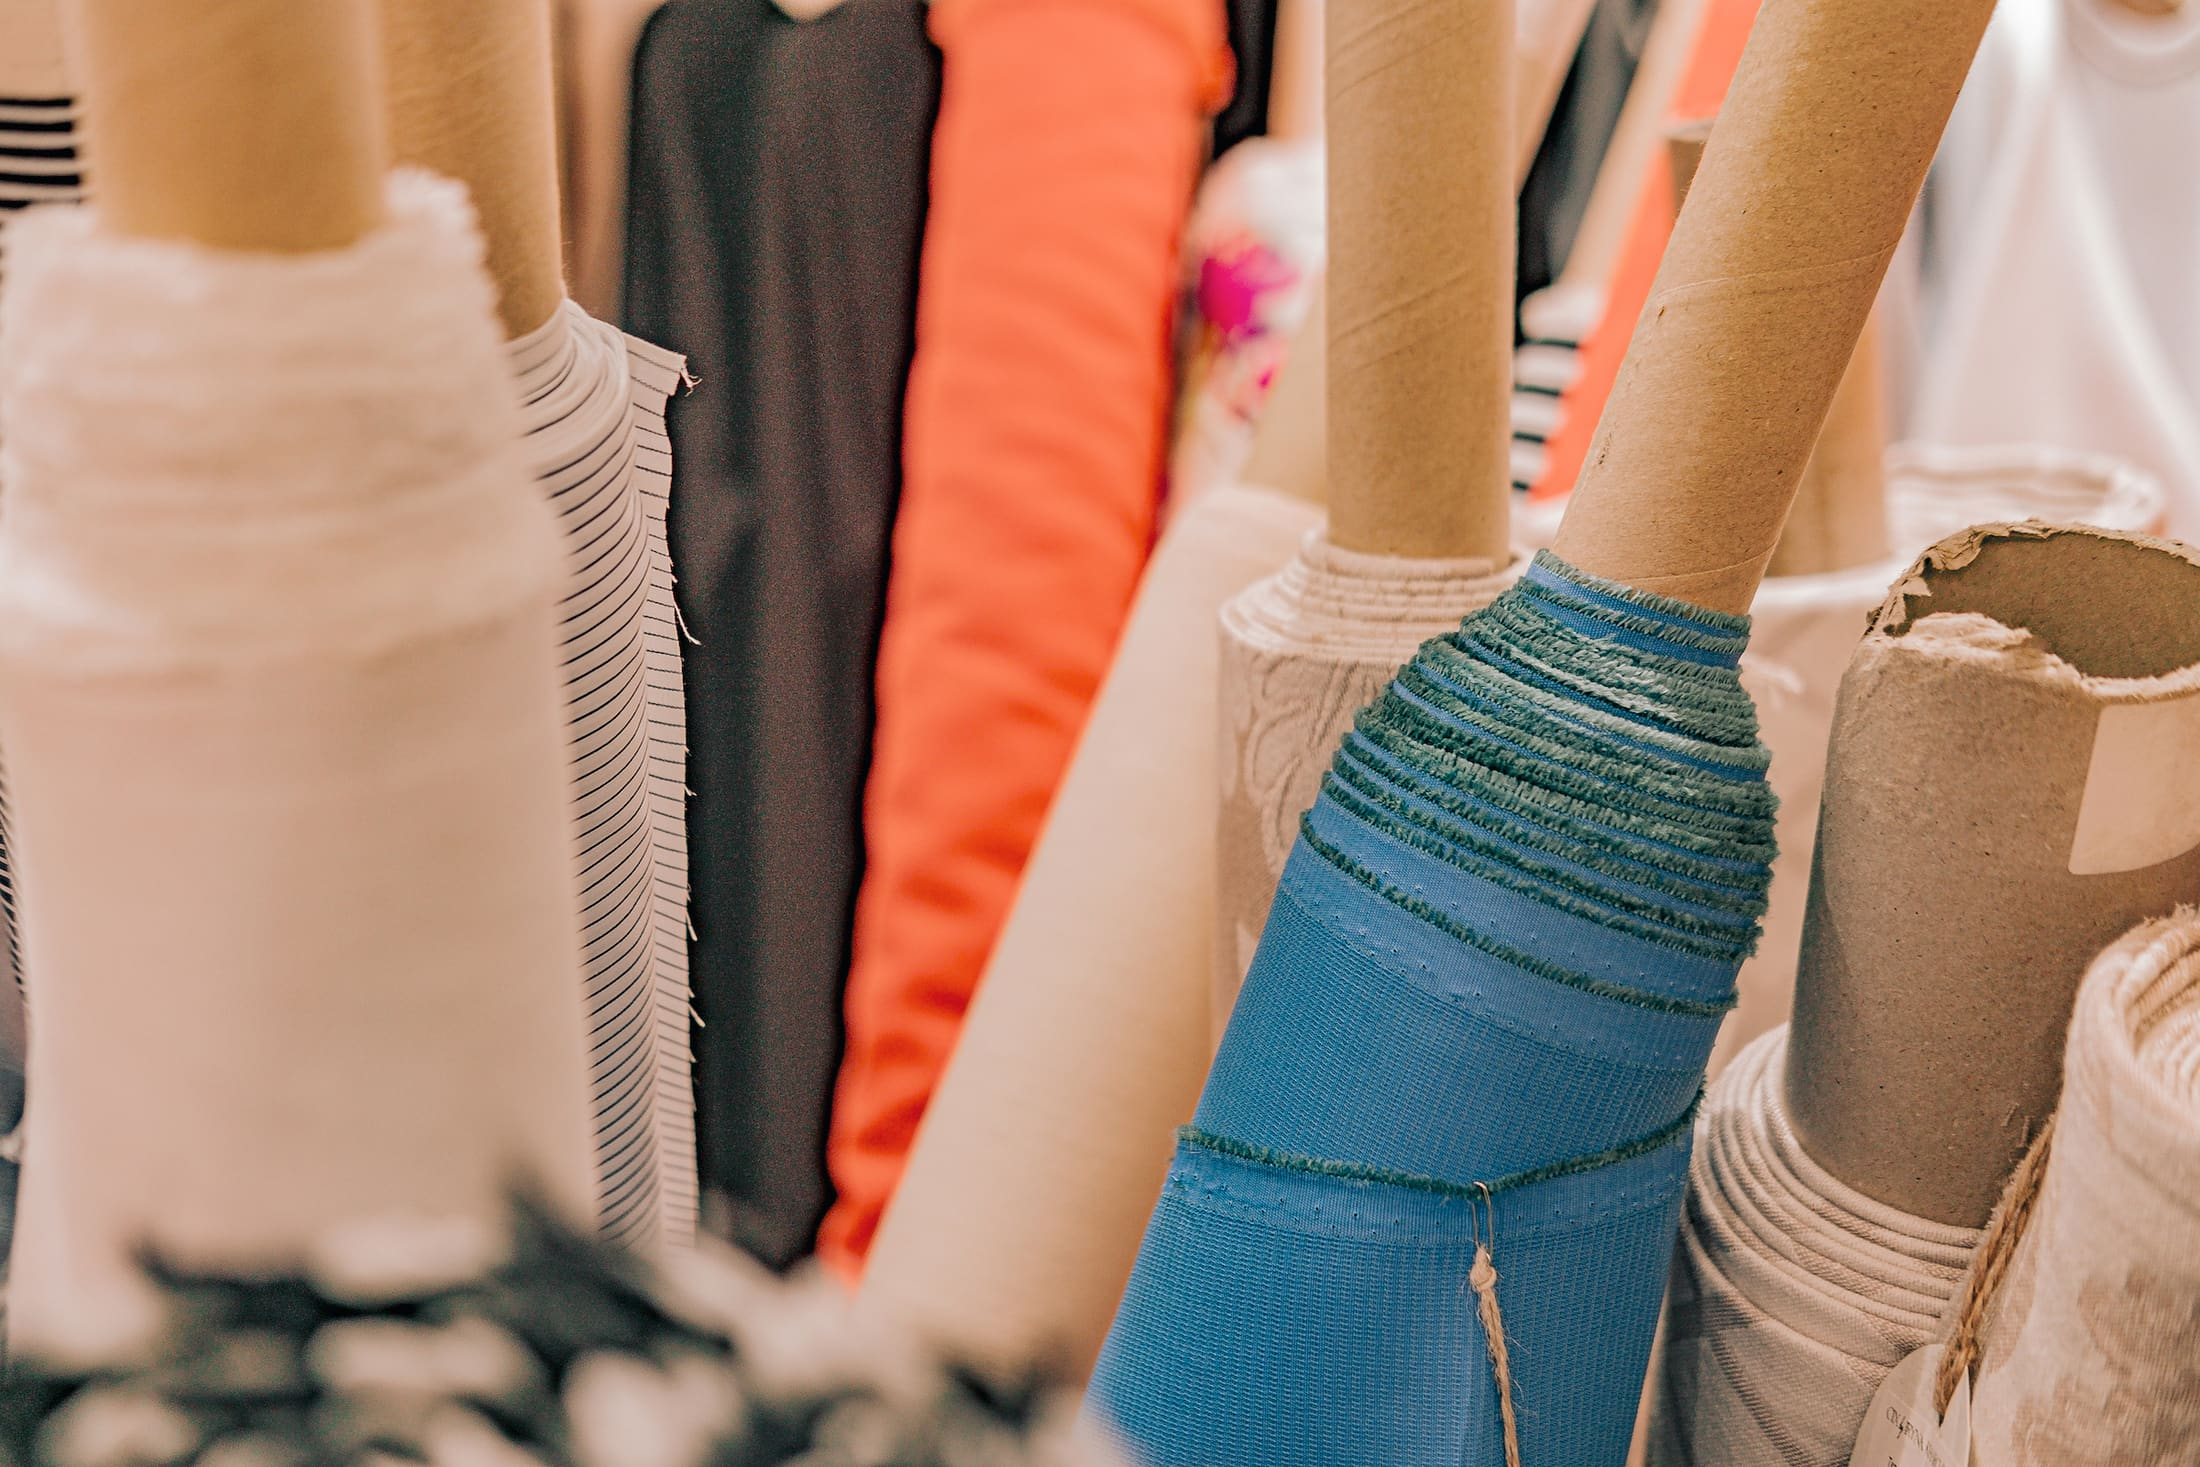 rolls of natural fashion fabrics and textiles 9EFTPJ7